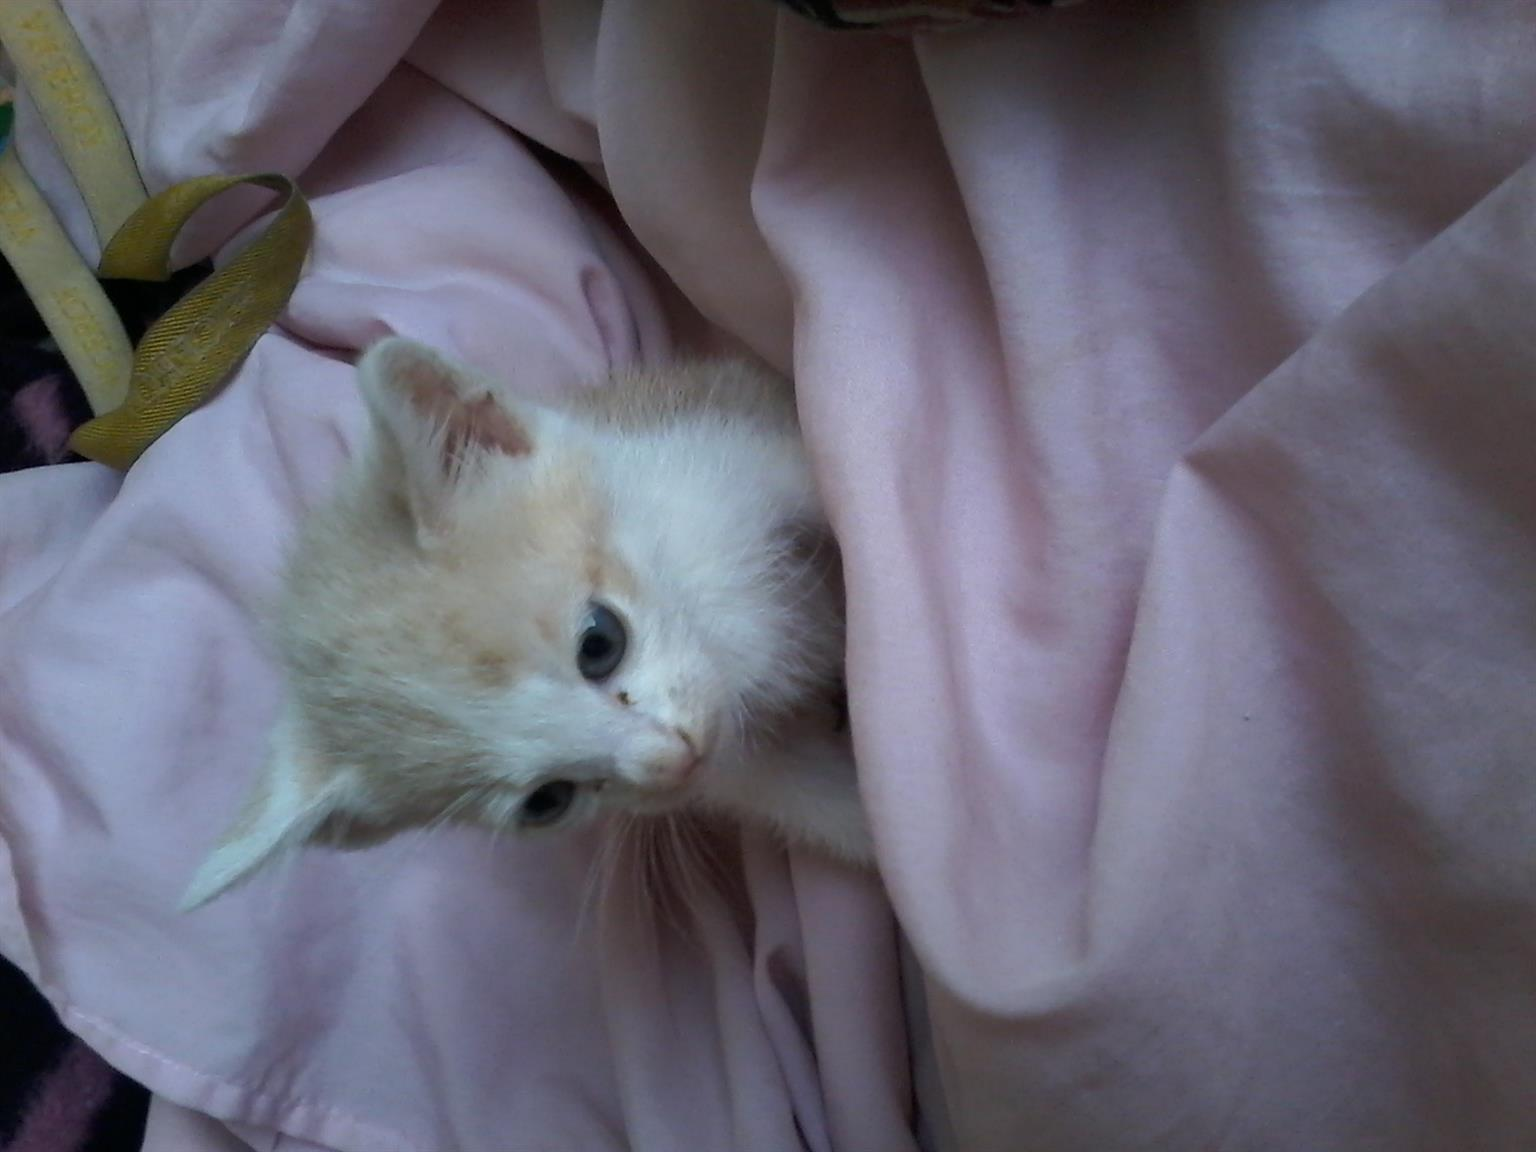 l have 6 cute kitten up for sale